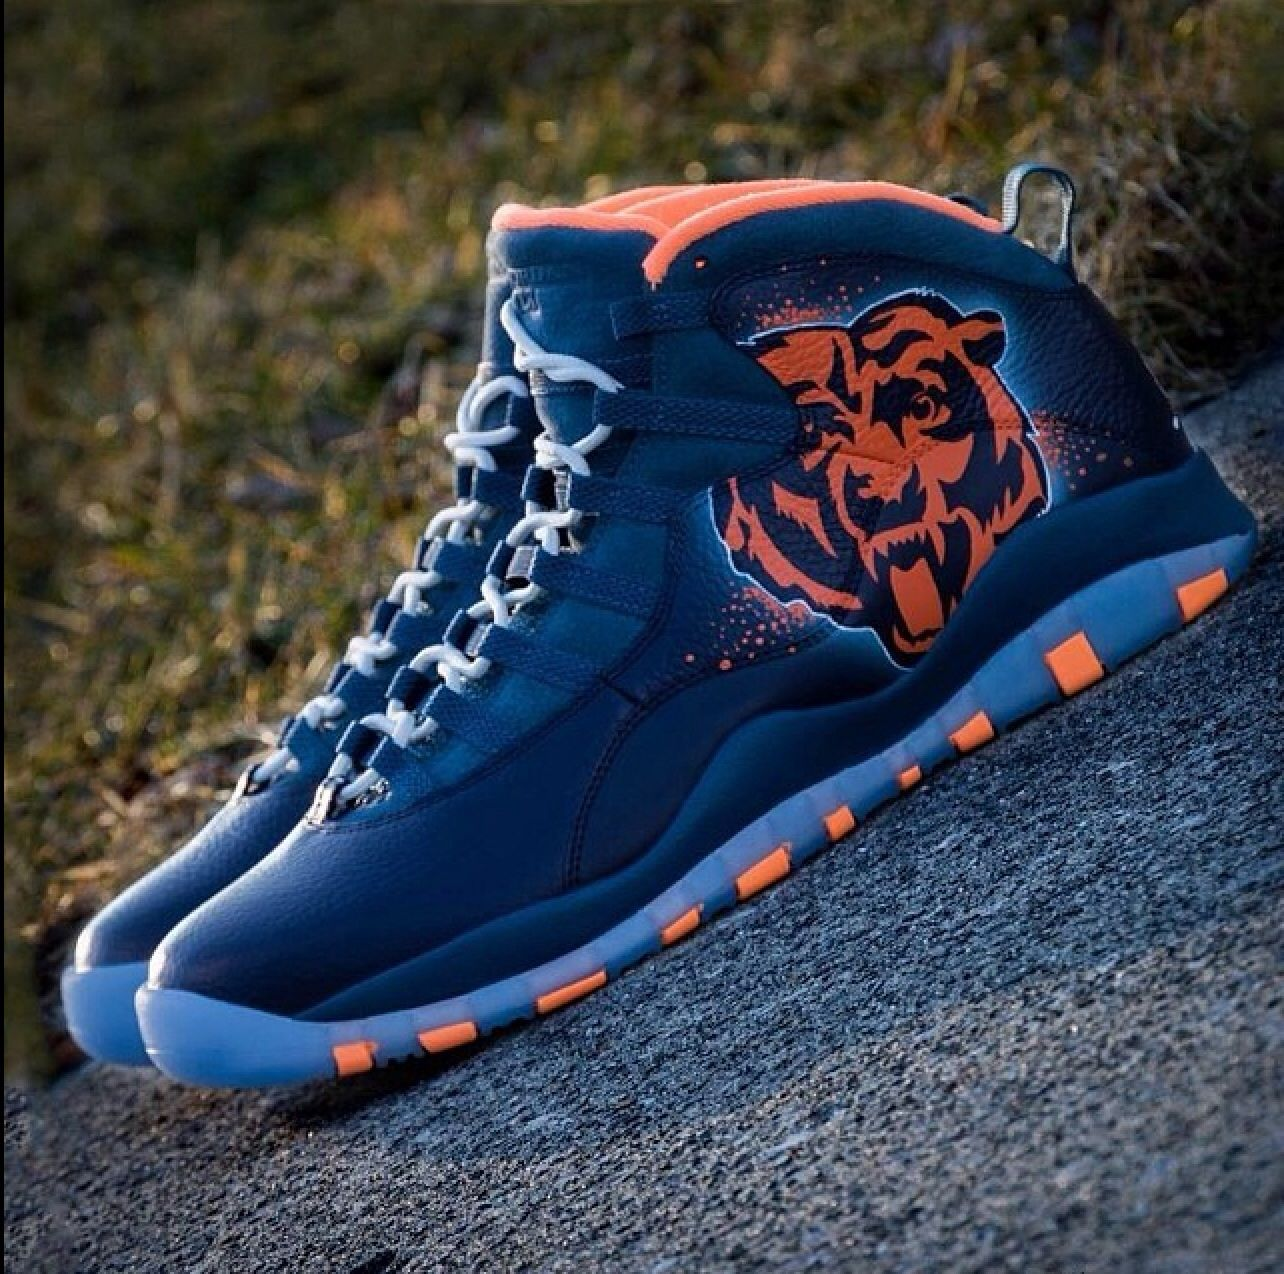 Chicago Bears colorwave Jordans for all you Bears fans out there.